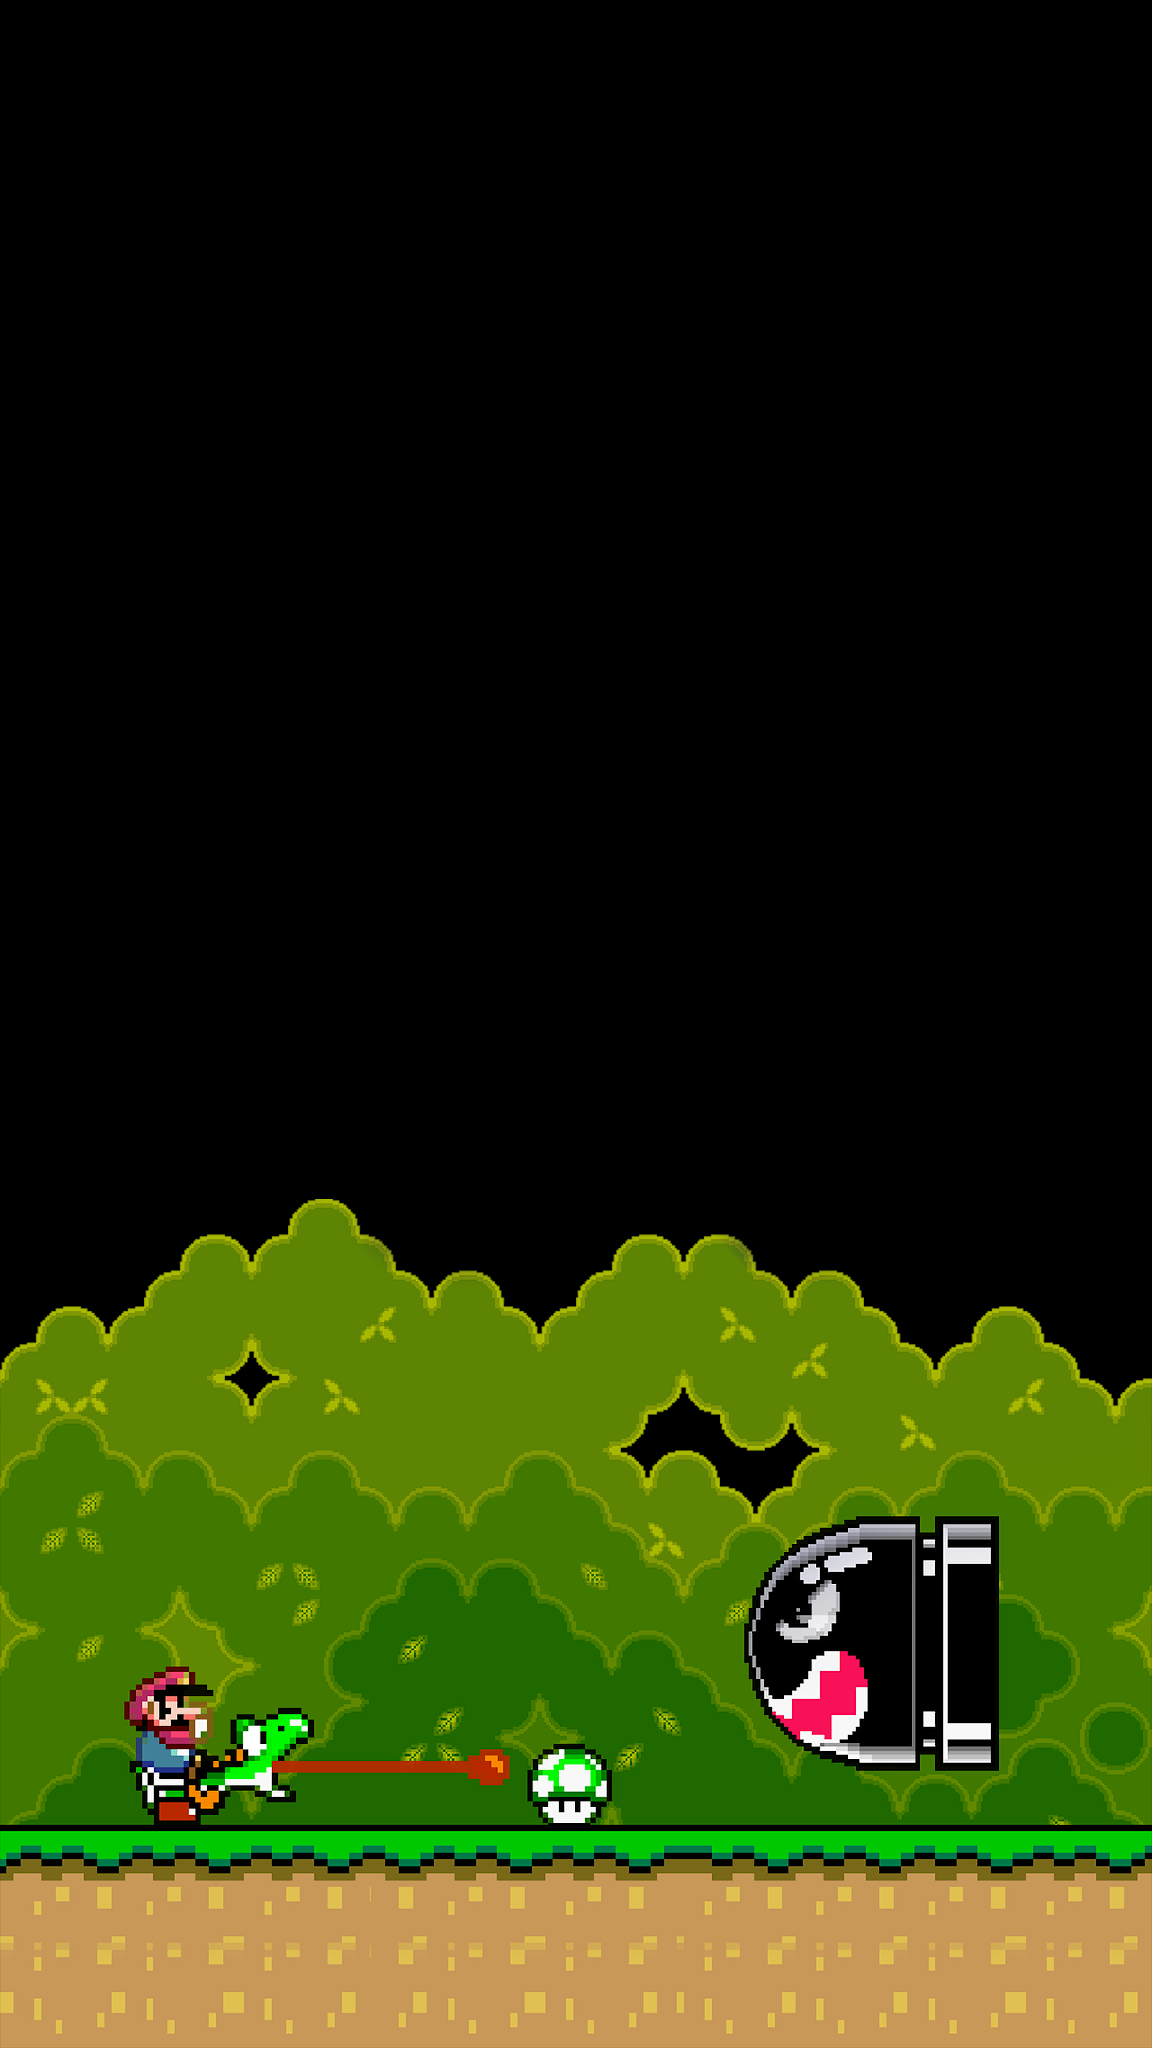 super mario world background for phone amoled black